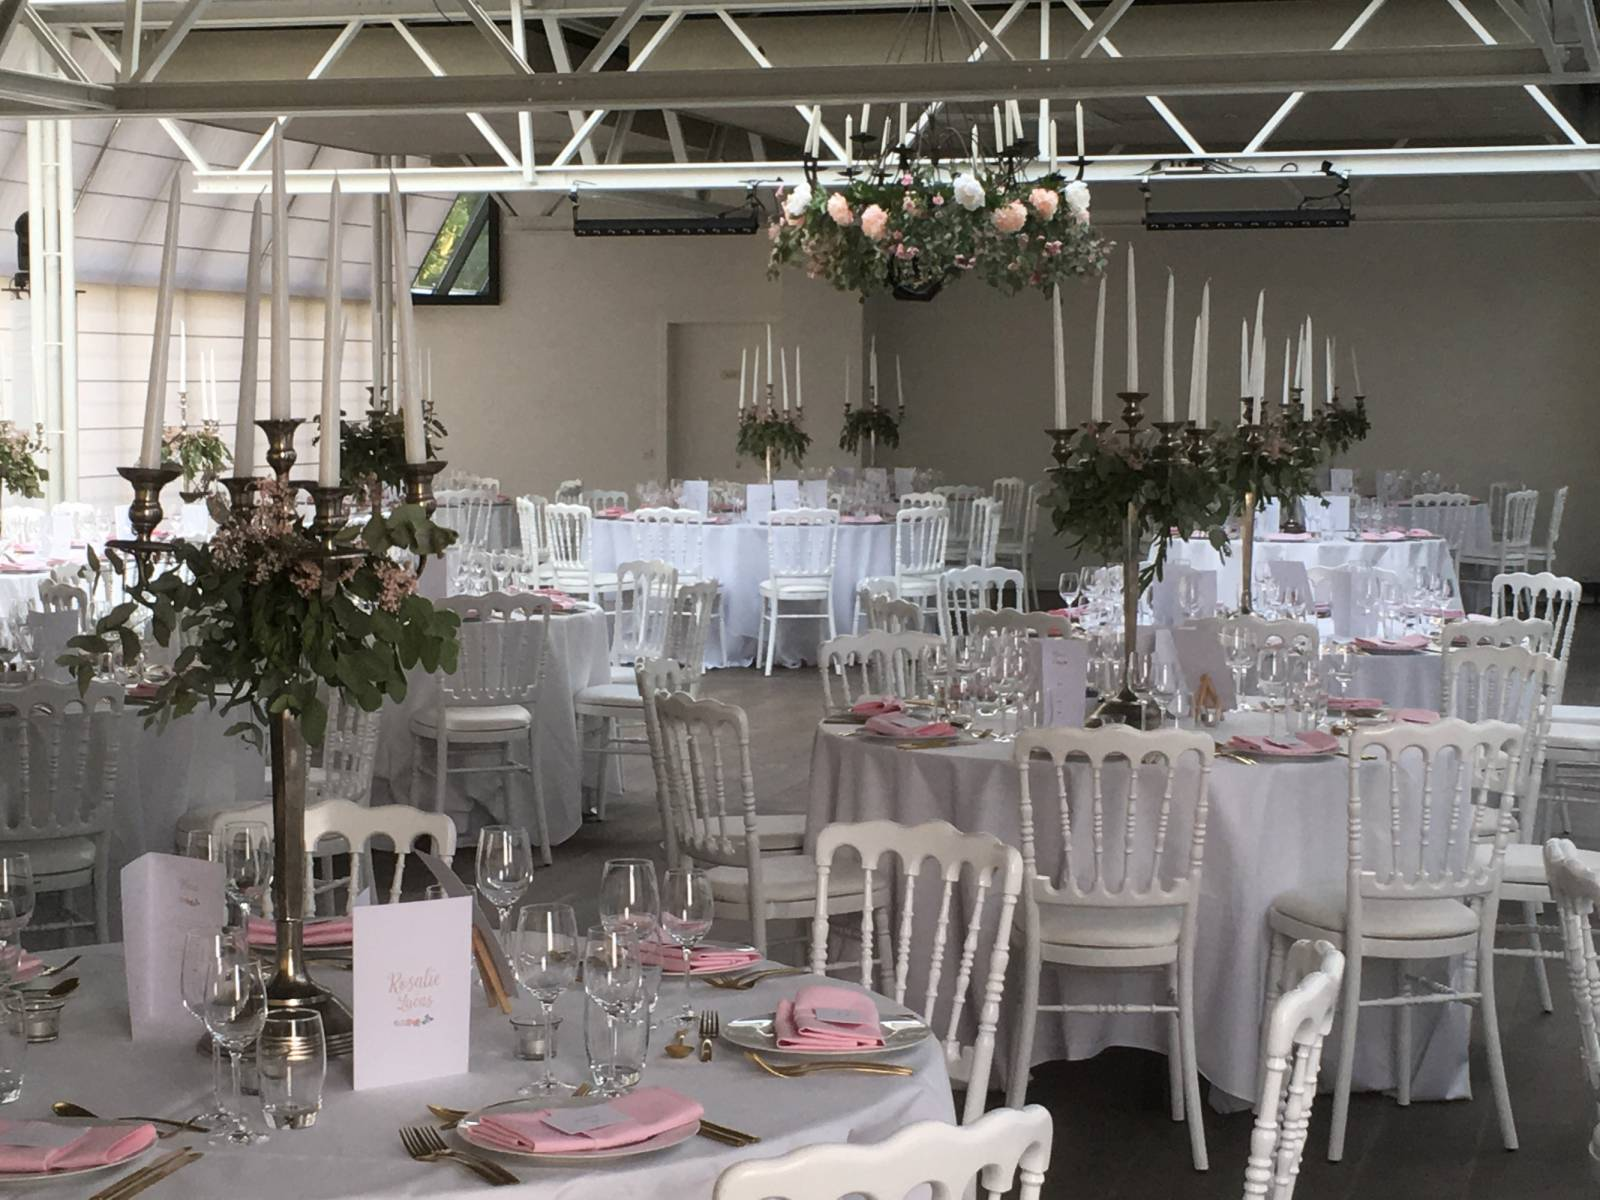 House of Weddings Kasteel Te Lake Feestzaal Oost-Vlaanderen Catering Ceremonie Zulte Gent (11)